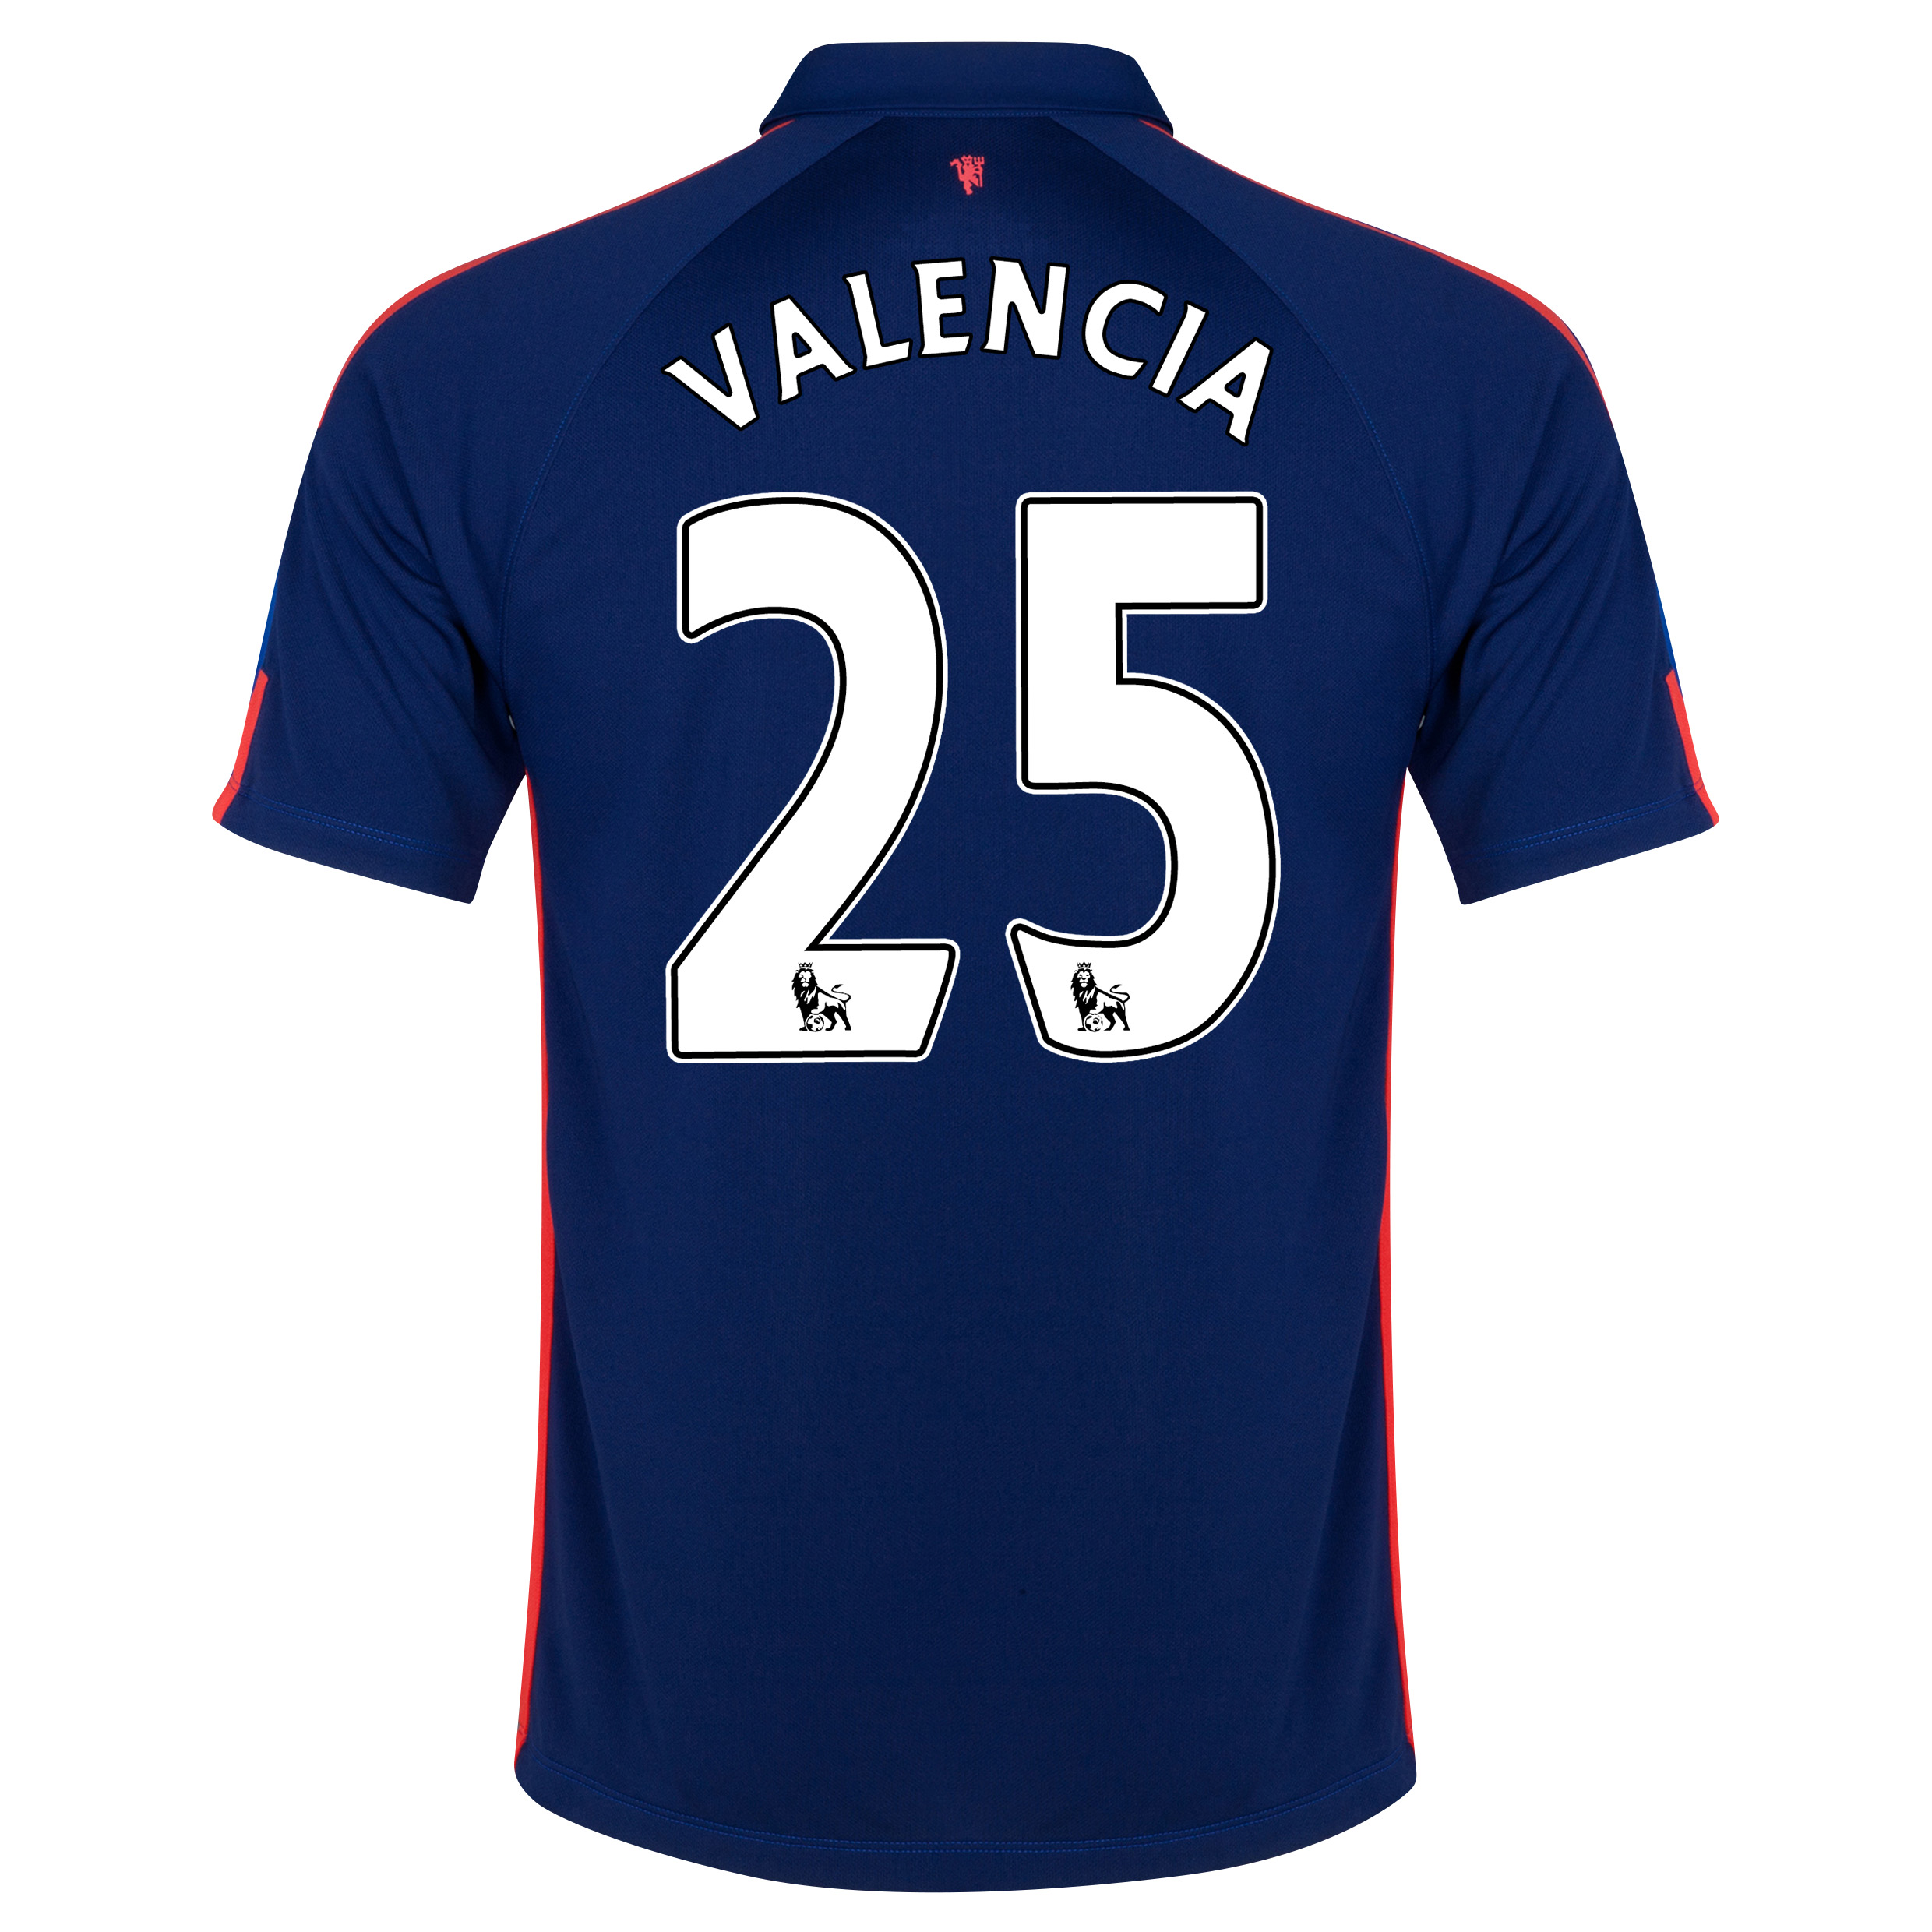 Manchester United Third Kit 2014/15 - Little Boys with Valencia 25 printing